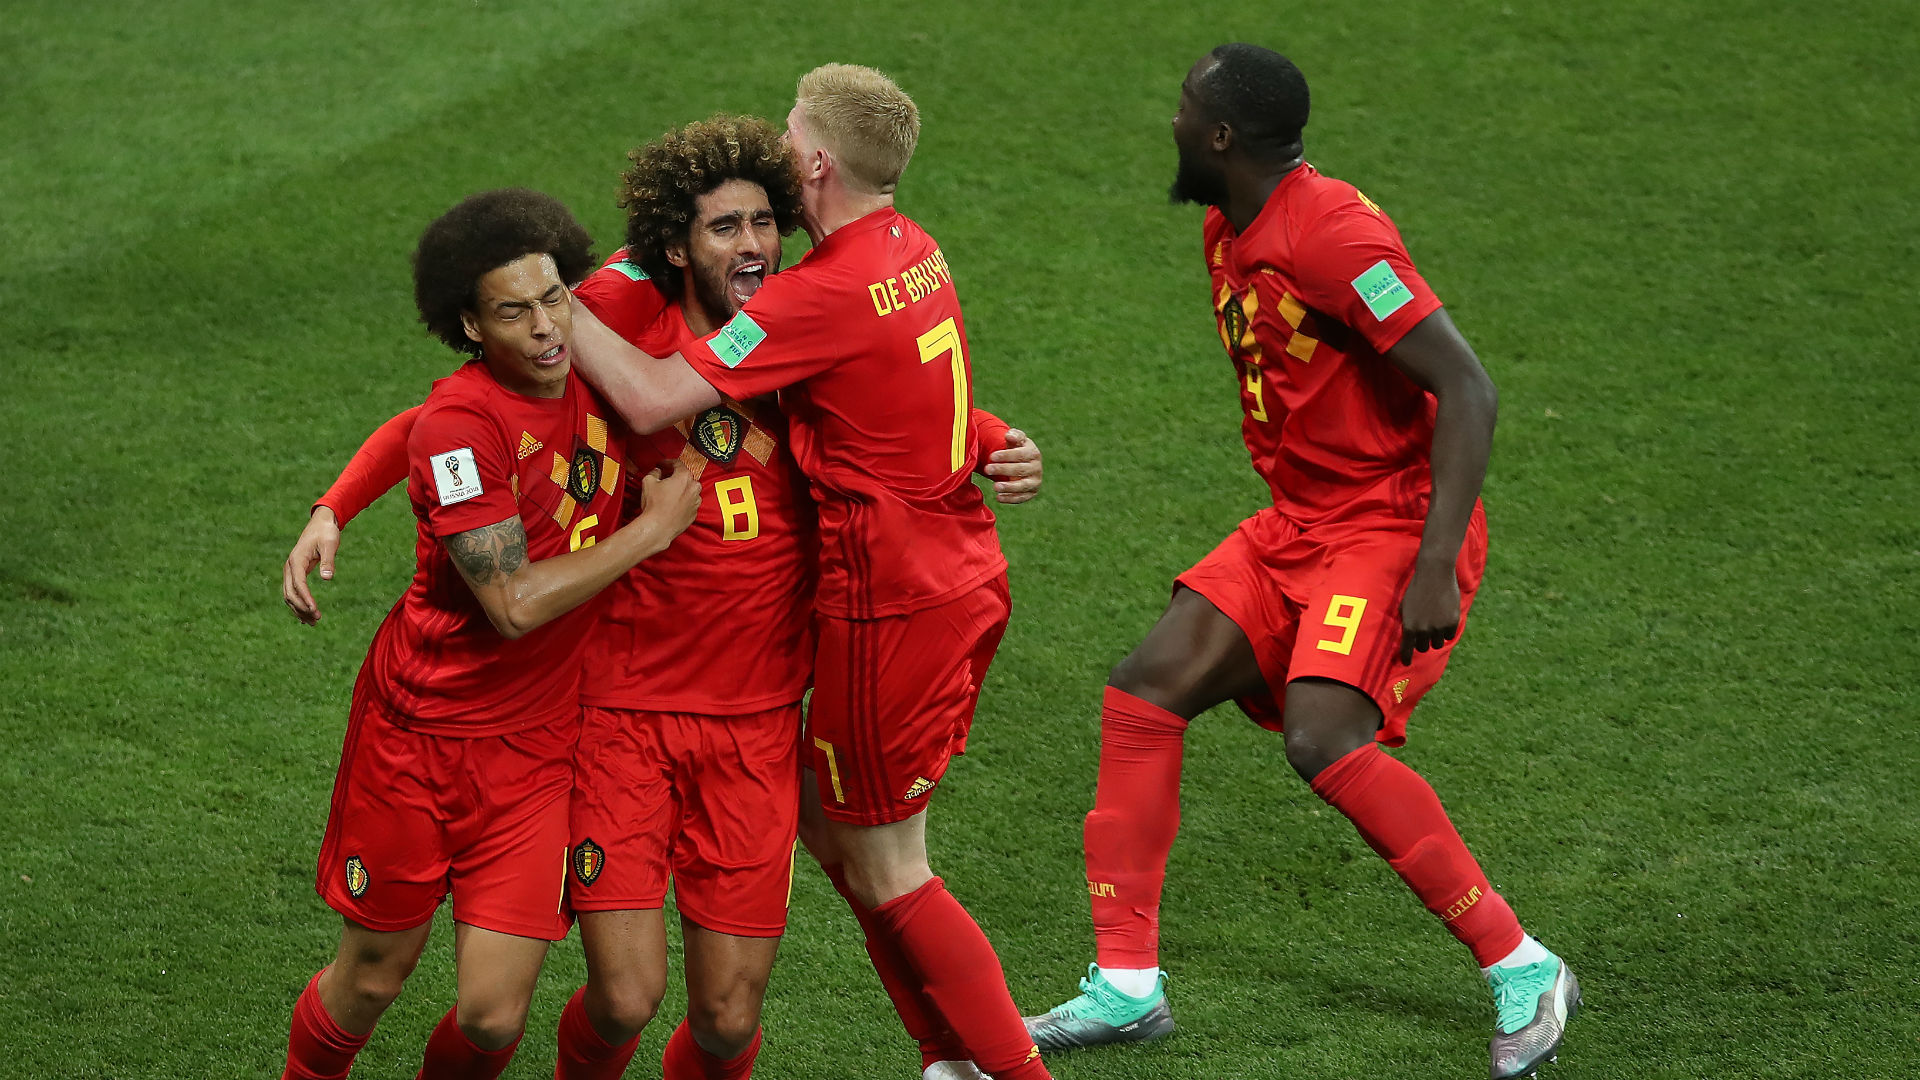 Brazil's World Cup misery continues at the hands of Belgium